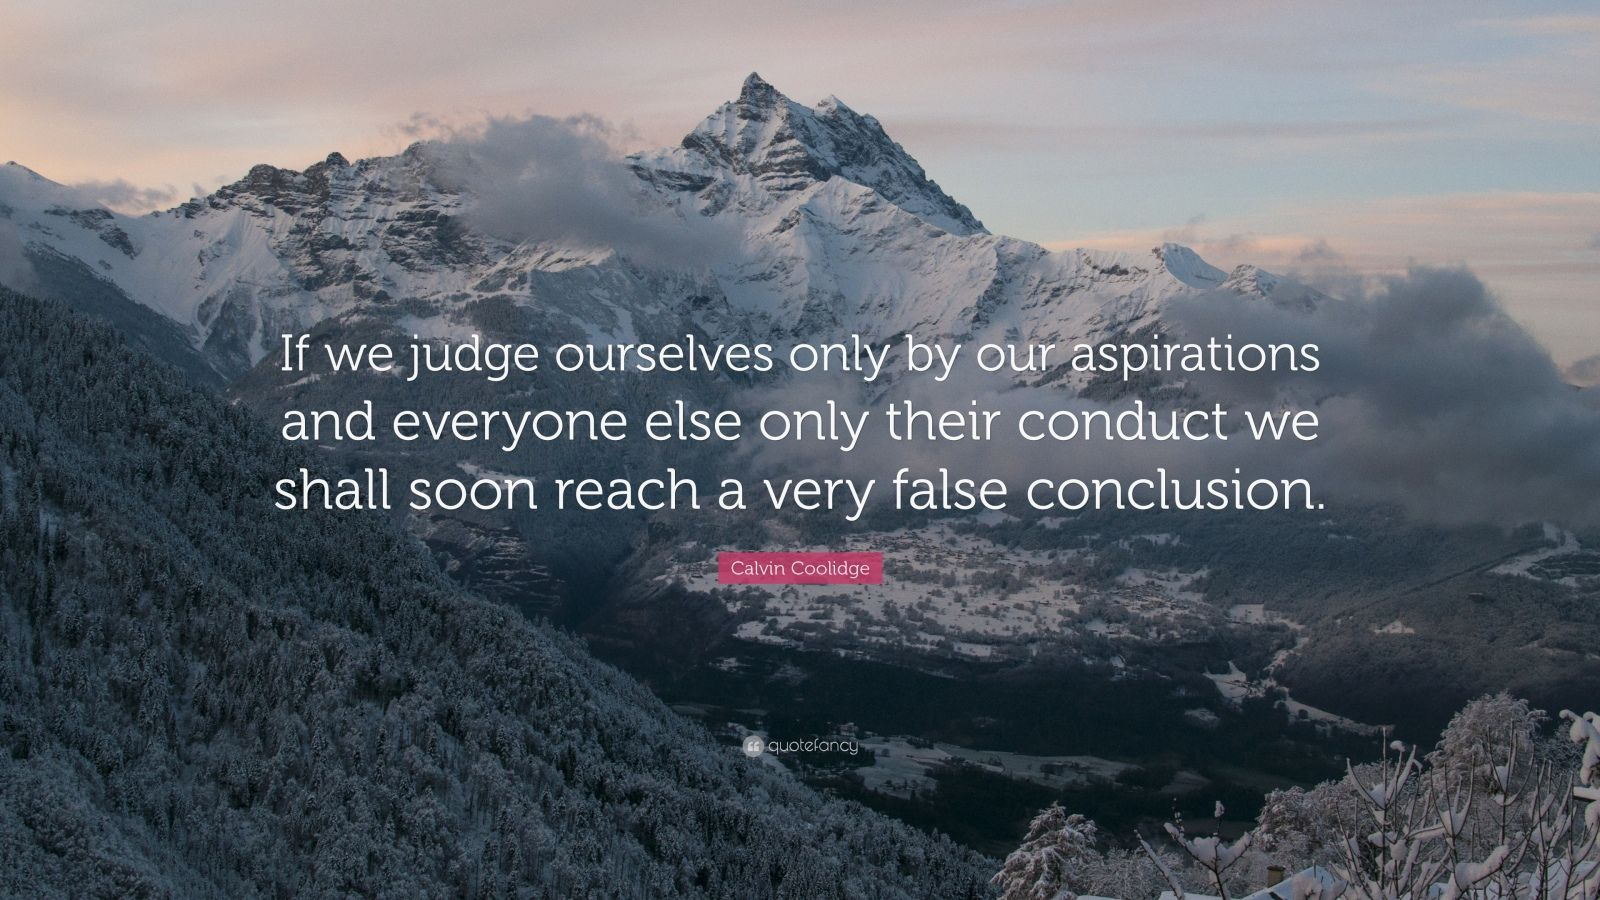 """Calvin Coolidge Quote: """"If we judge ourselves only by our aspirations and everyone else only their conduct we shall soon reach a very false conclusion."""""""